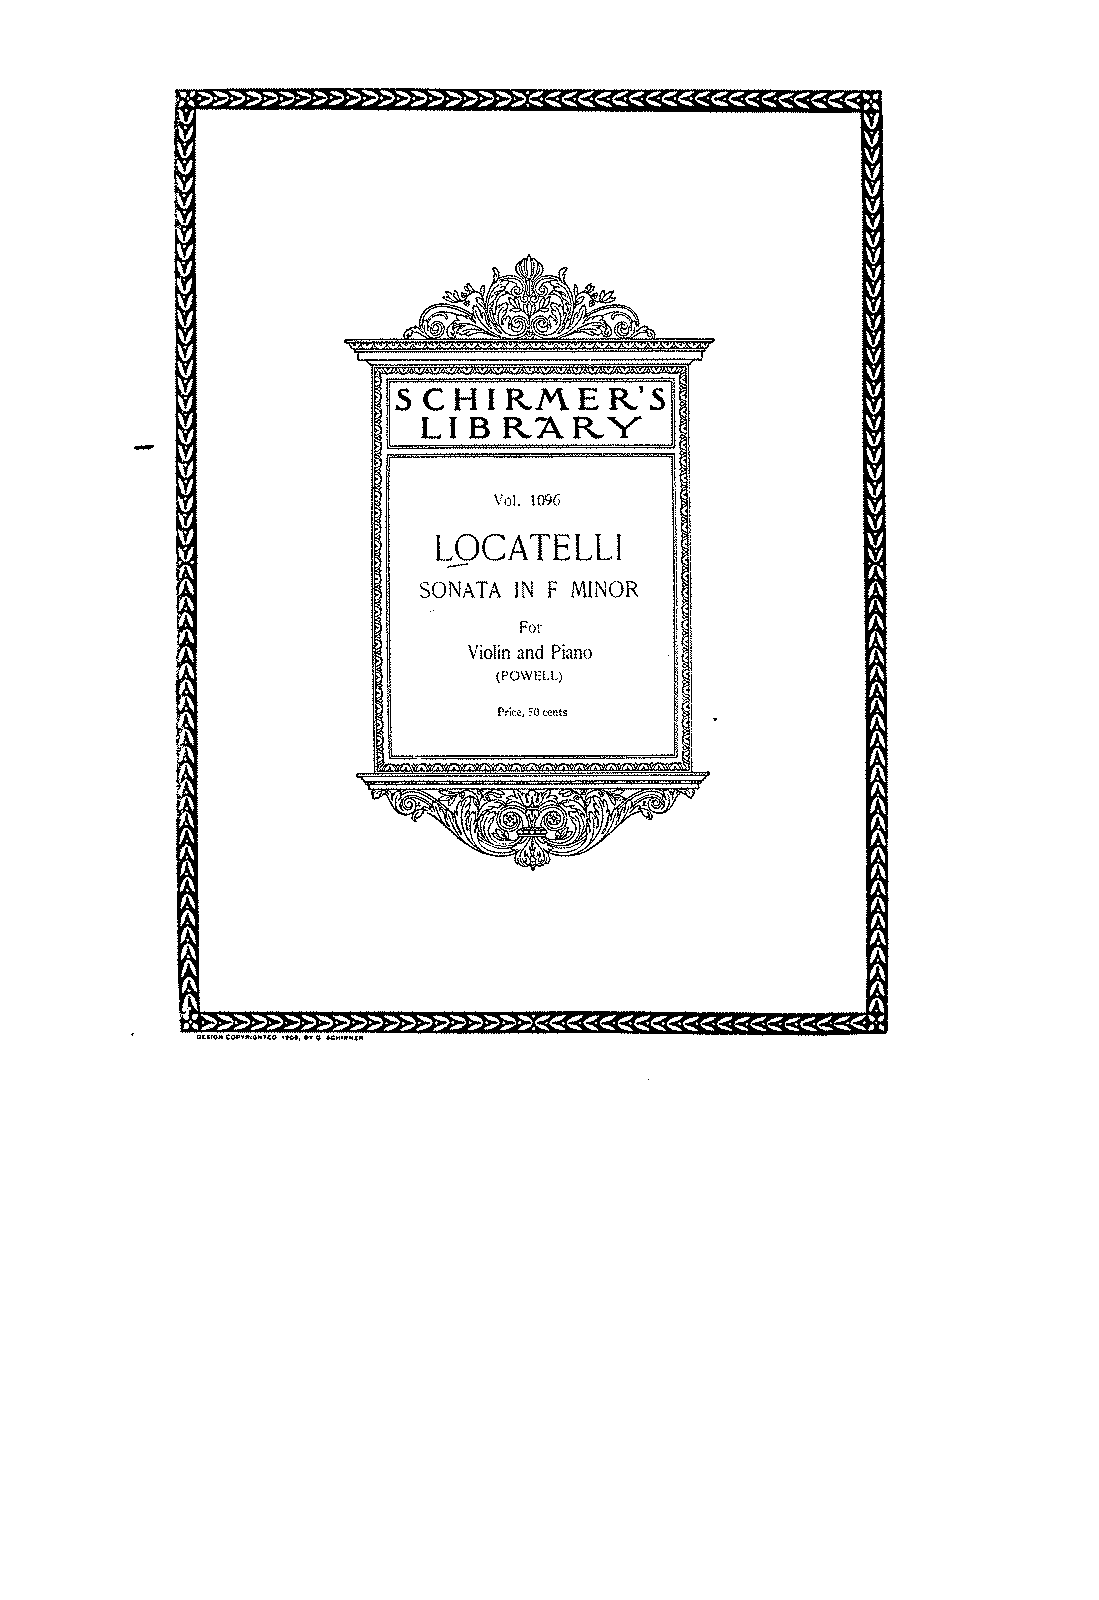 PMLP220896-Locatelli - Sonata in F minor for violin and piano (Zellner-Powell) score.pdf